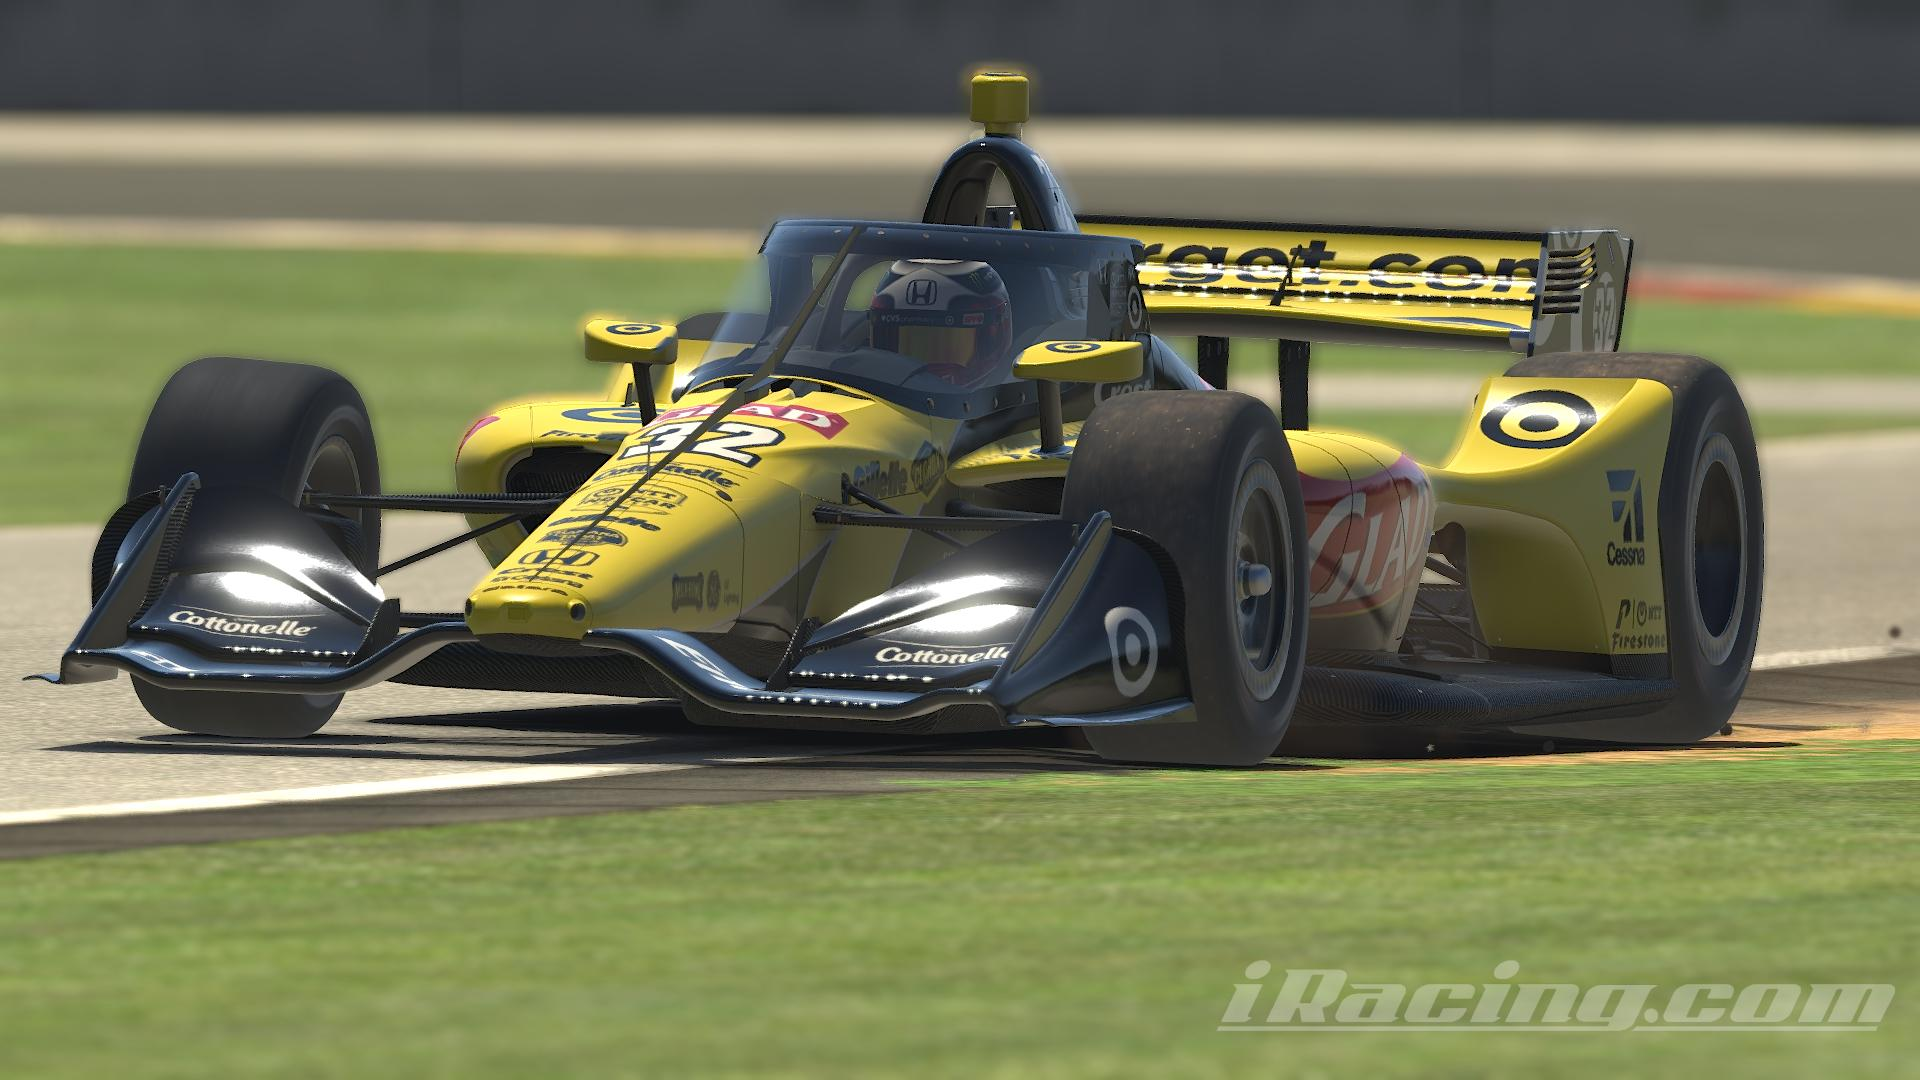 Preview of Glad Indycar by Justin Teel